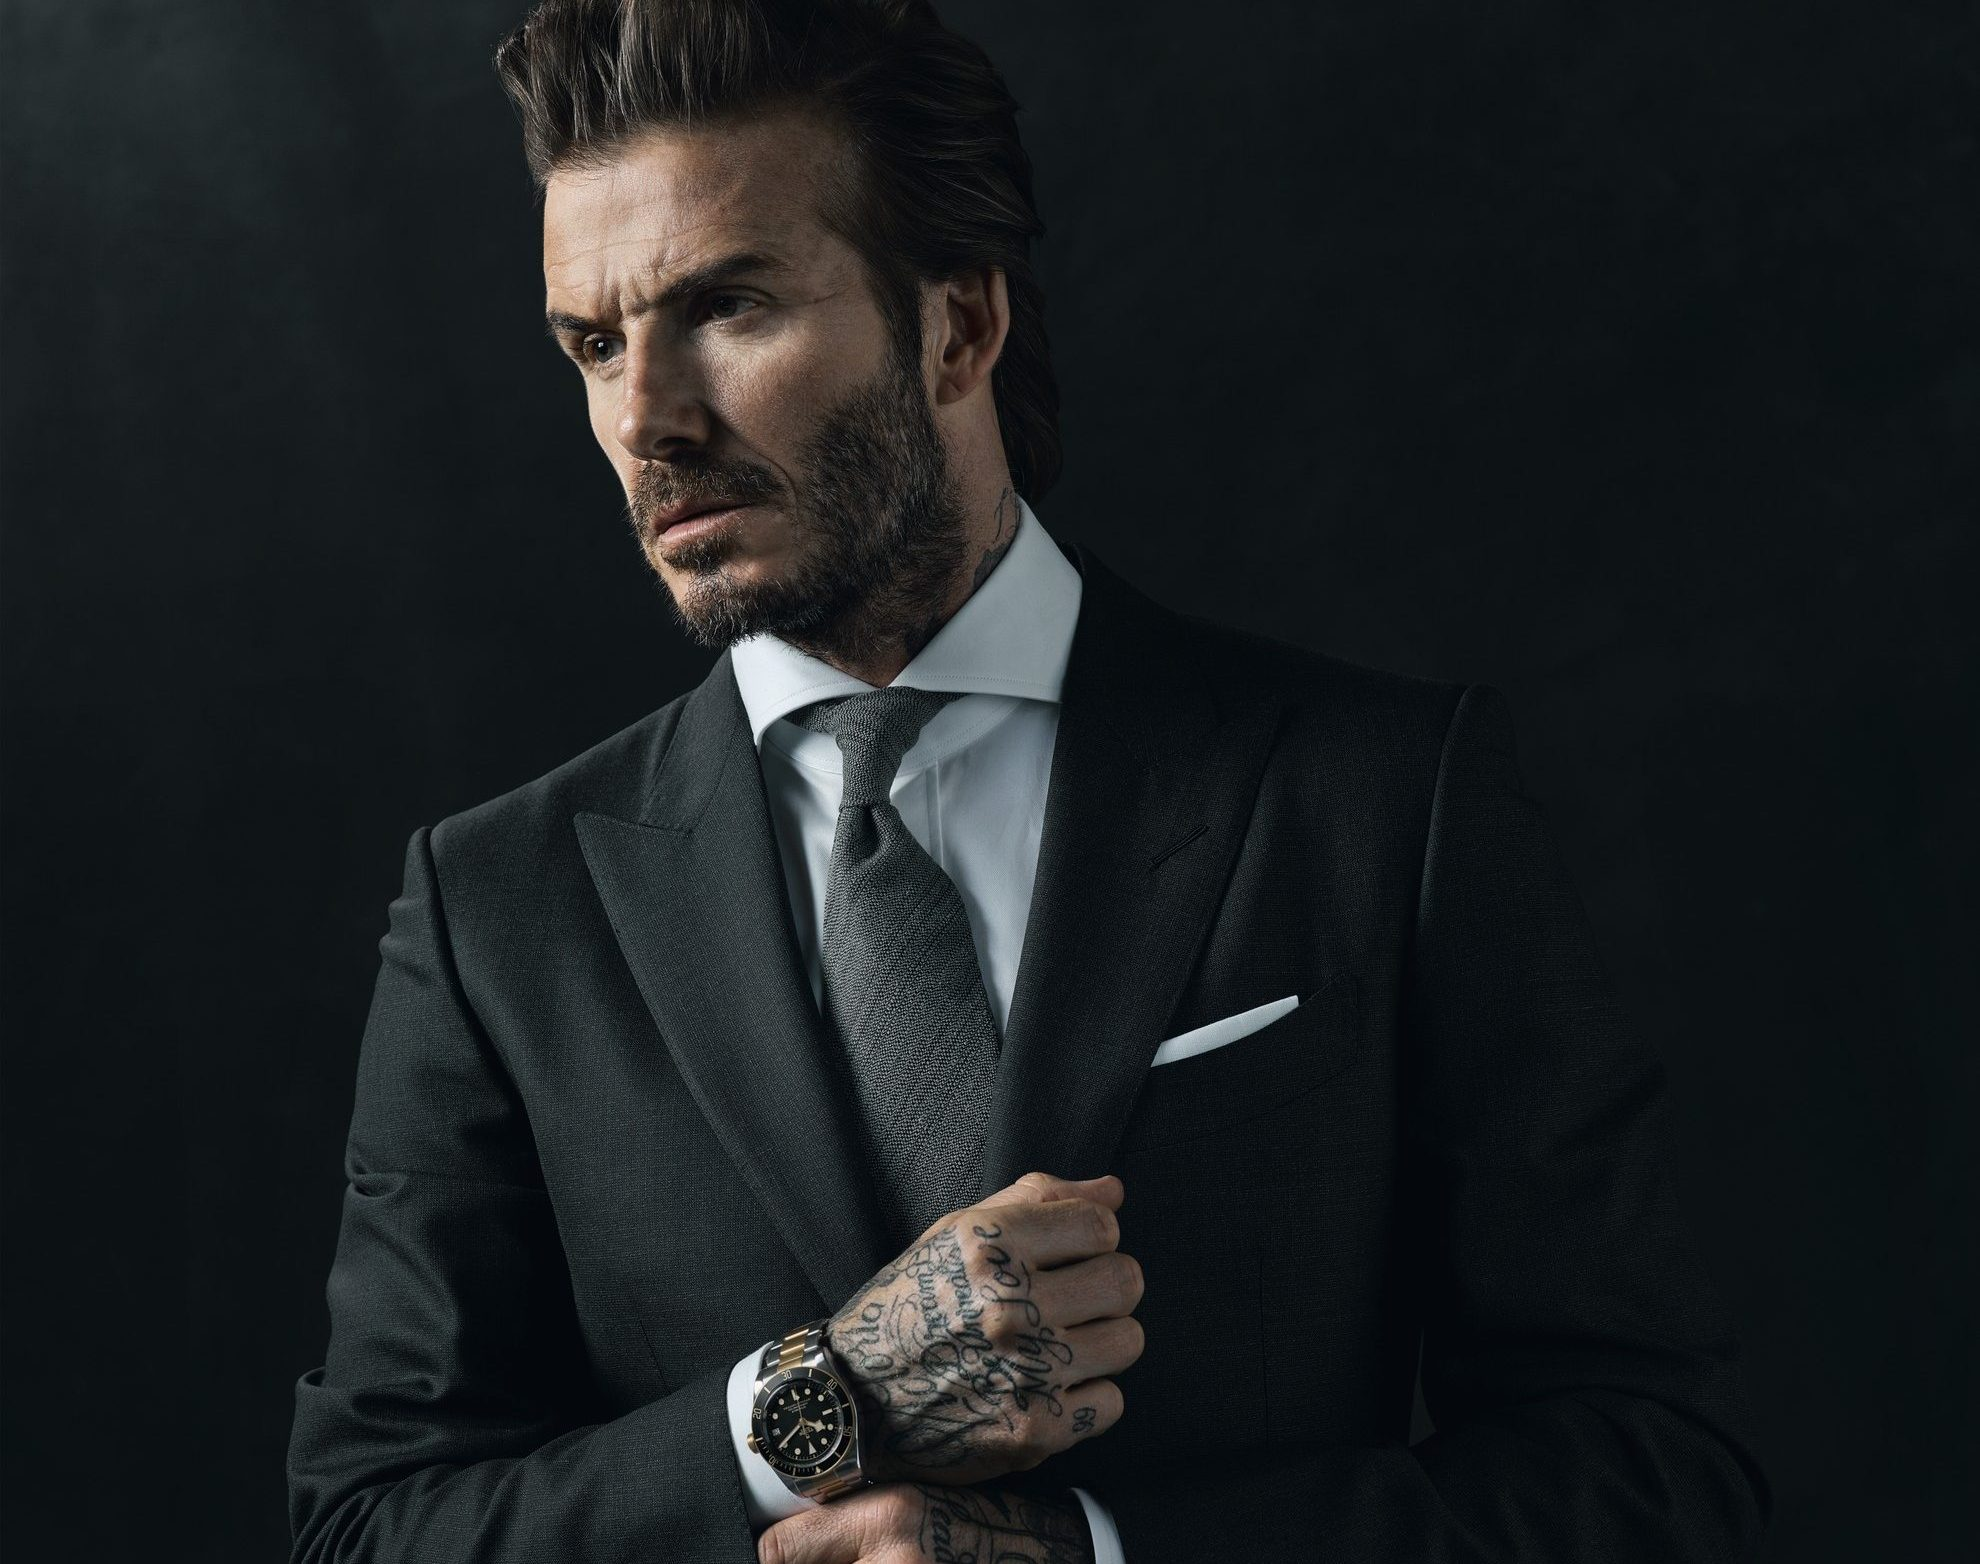 DAVID BECKHAM wearing a TUDOR watch